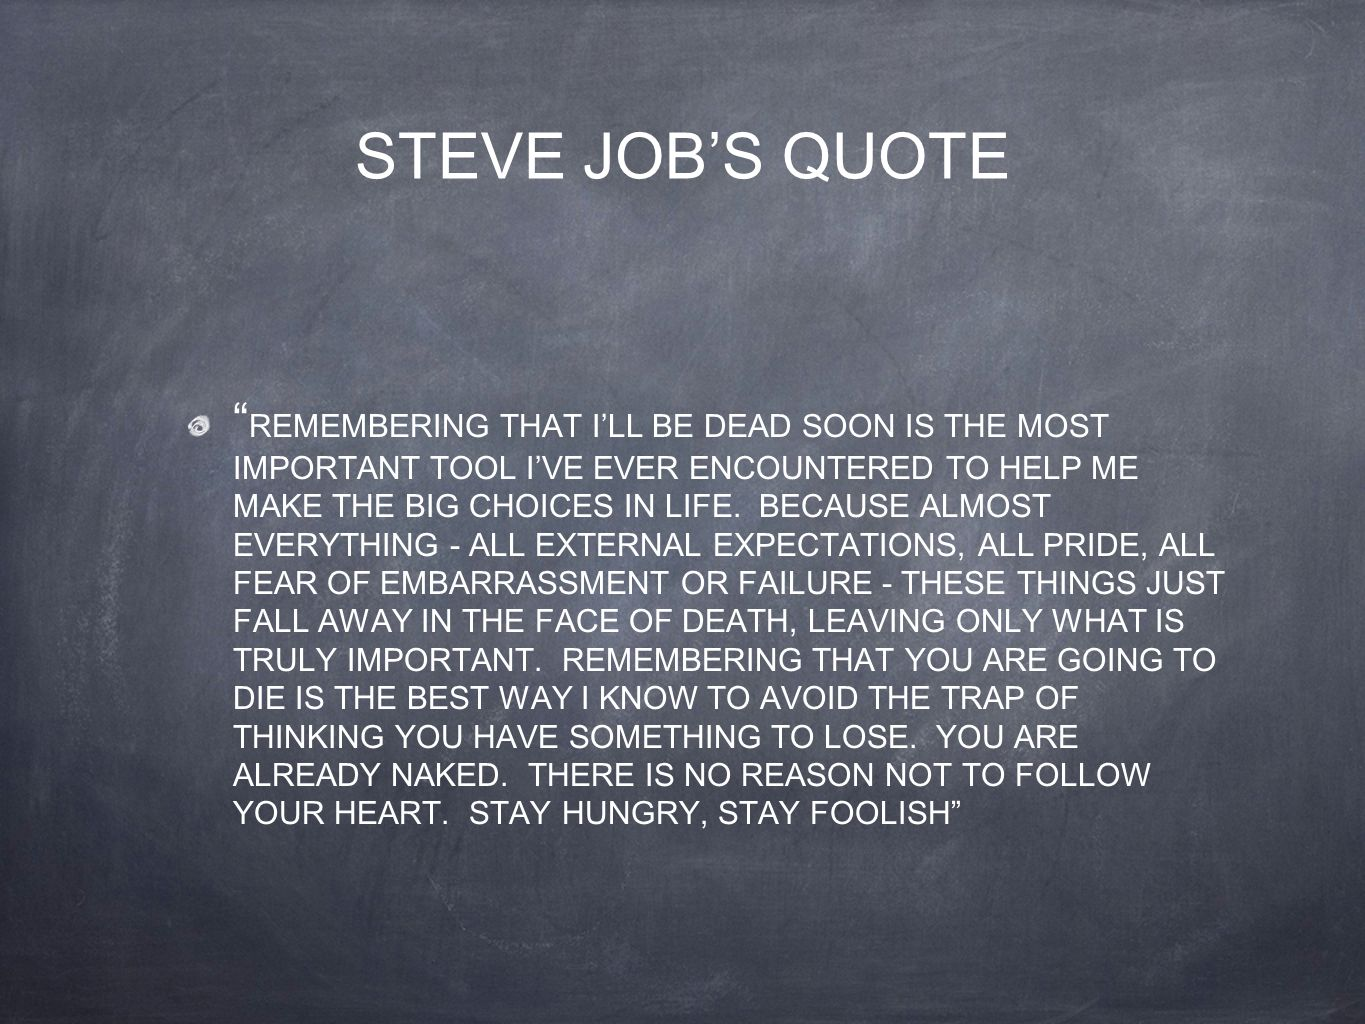 STEVE JOB'S QUOTE REMEMBERING THAT I'LL BE DEAD SOON IS THE MOST IMPORTANT TOOL I'VE EVER ENCOUNTERED TO HELP ME MAKE THE BIG CHOICES IN LIFE.